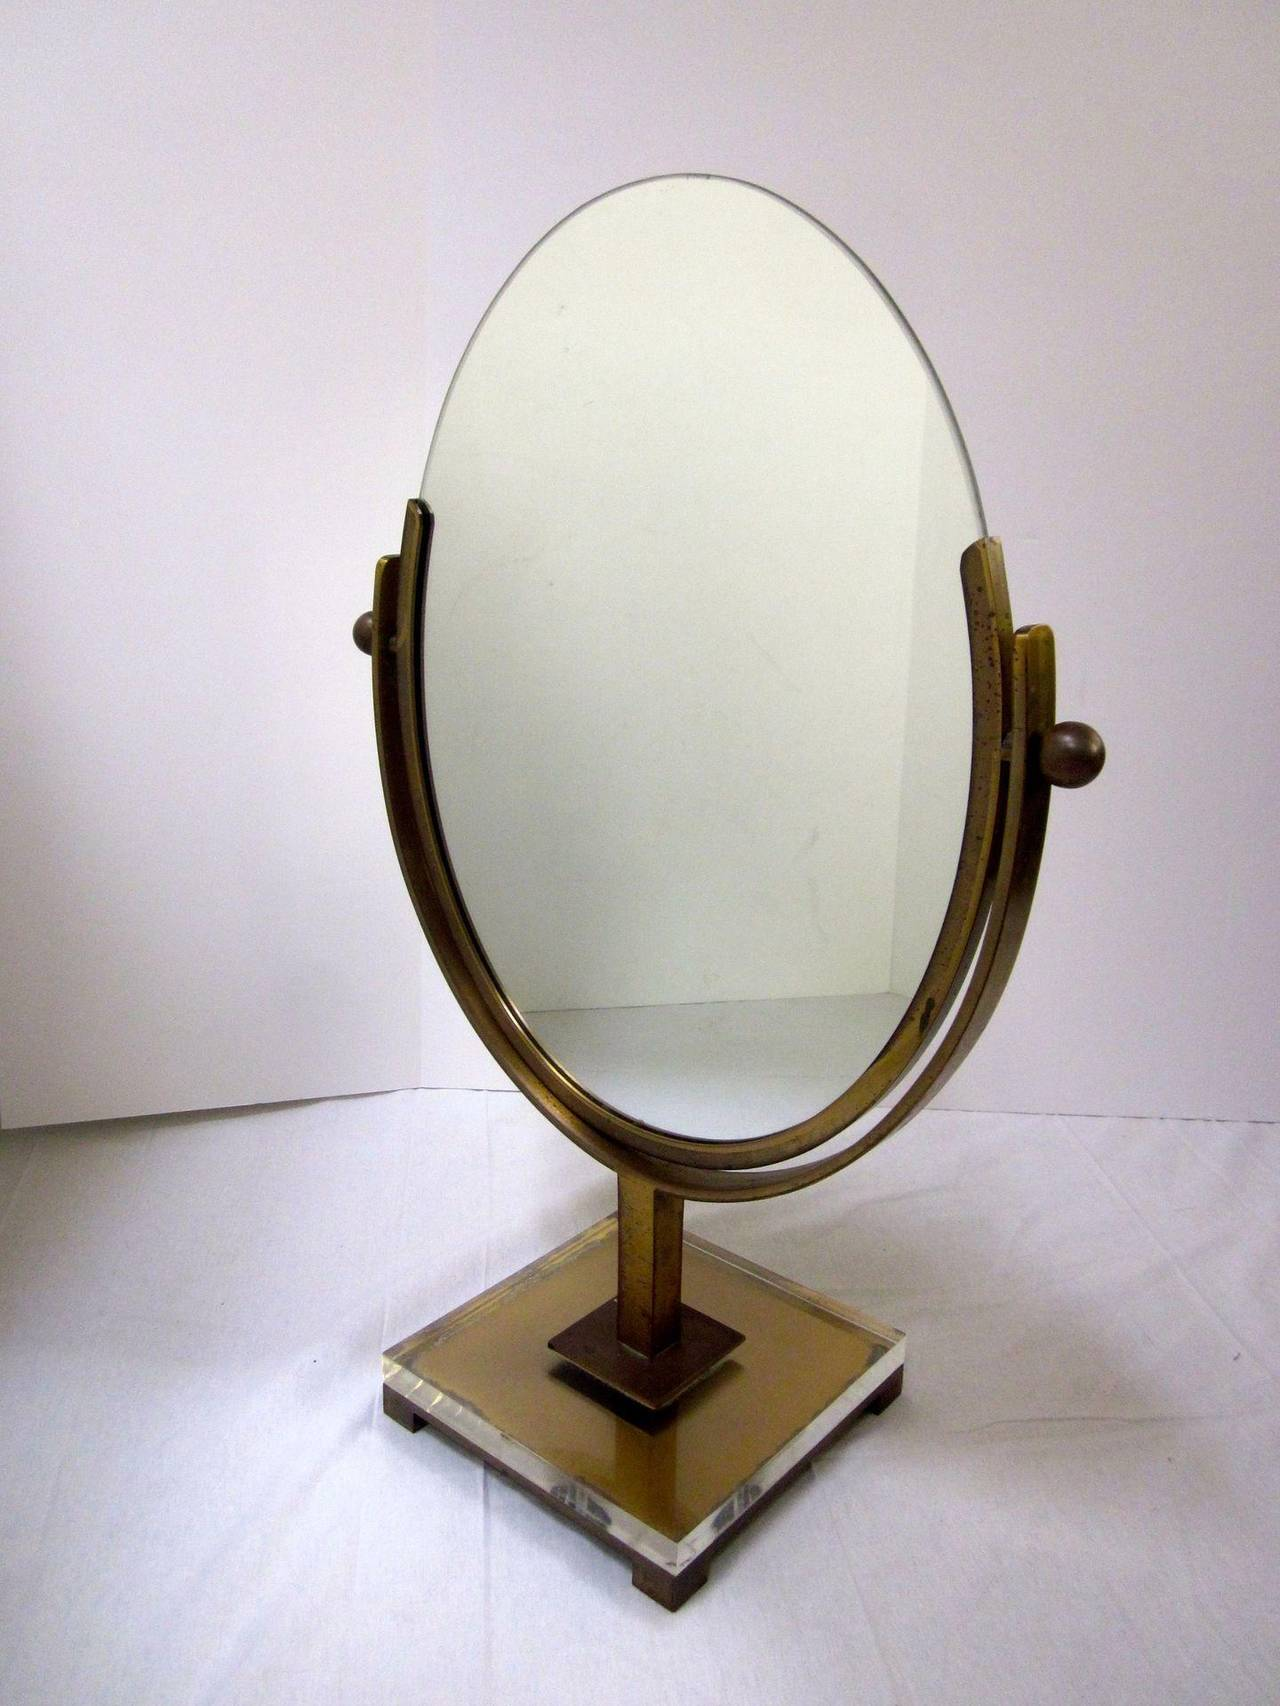 American Double Sided Vanity Mirror by Charles Hollis Jones in Brass and Lucite, Signed For Sale